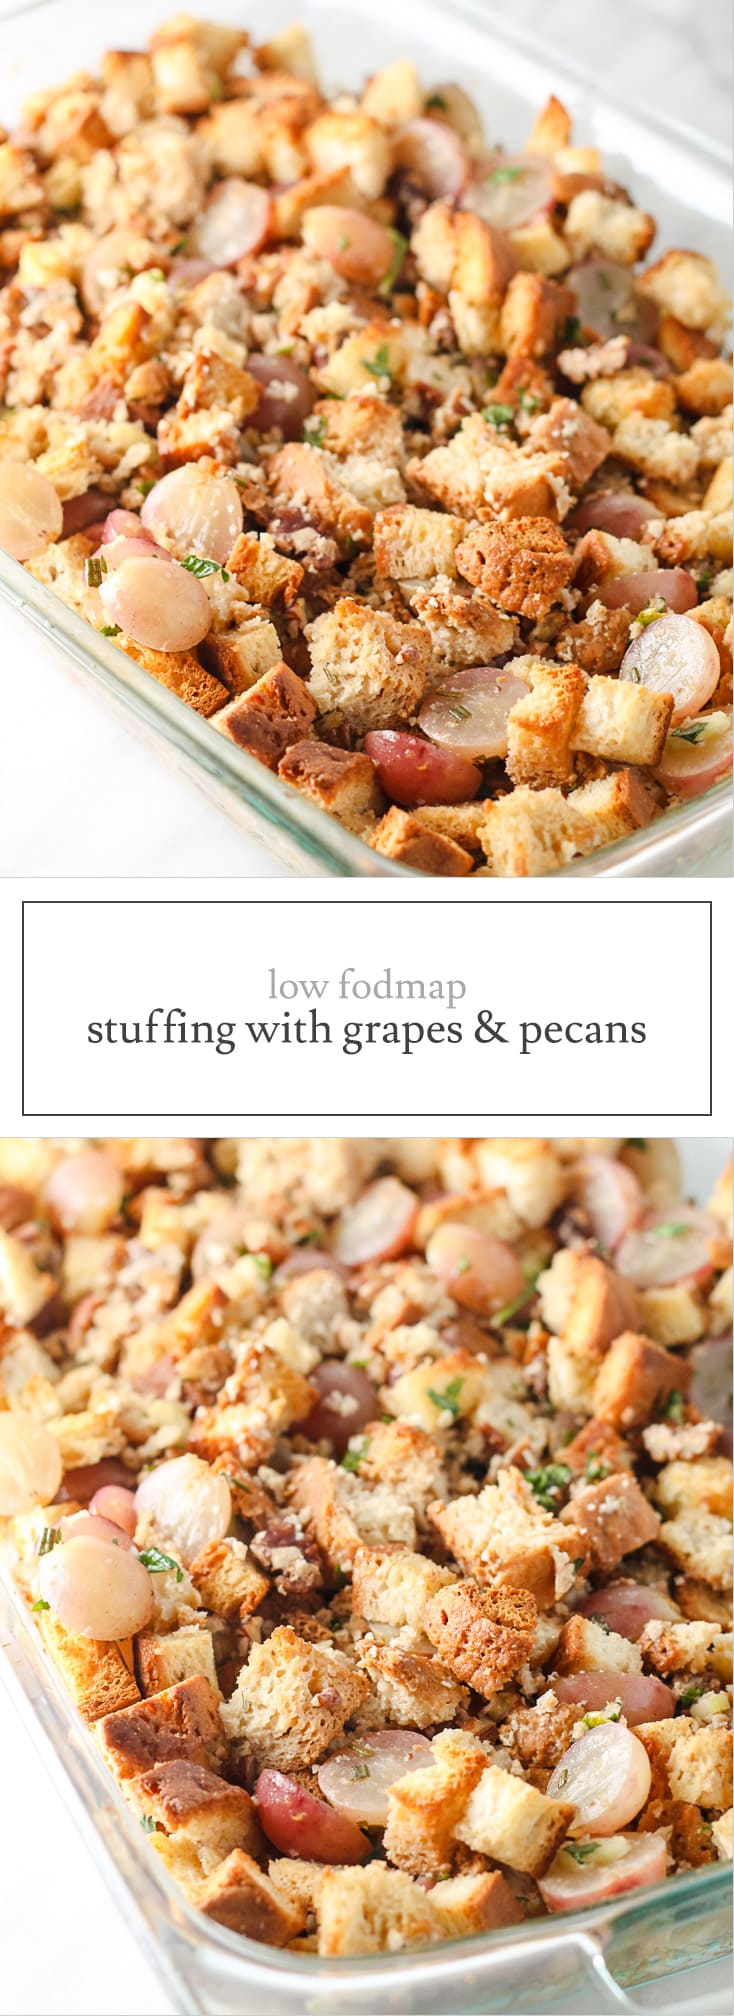 Low FODMAP Stuffing with Grapes and Pecans is a hearty, gluten free stuffing filled with sweet, savory and crunchy ingredients.